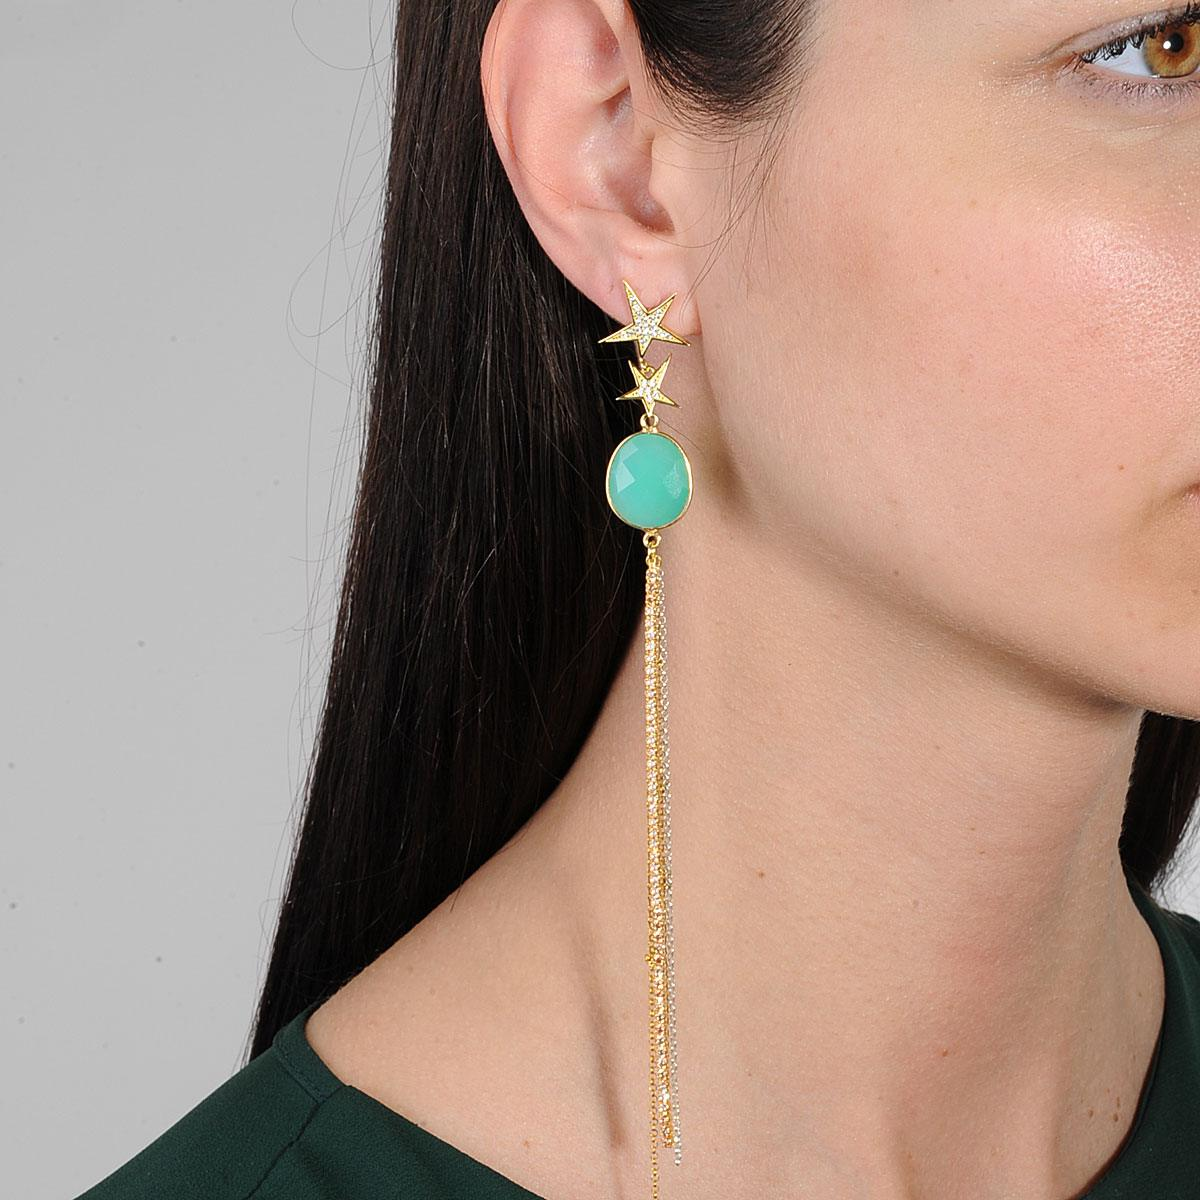 Tassels earrings with 925 silver and semiprecious stones katerina psoma